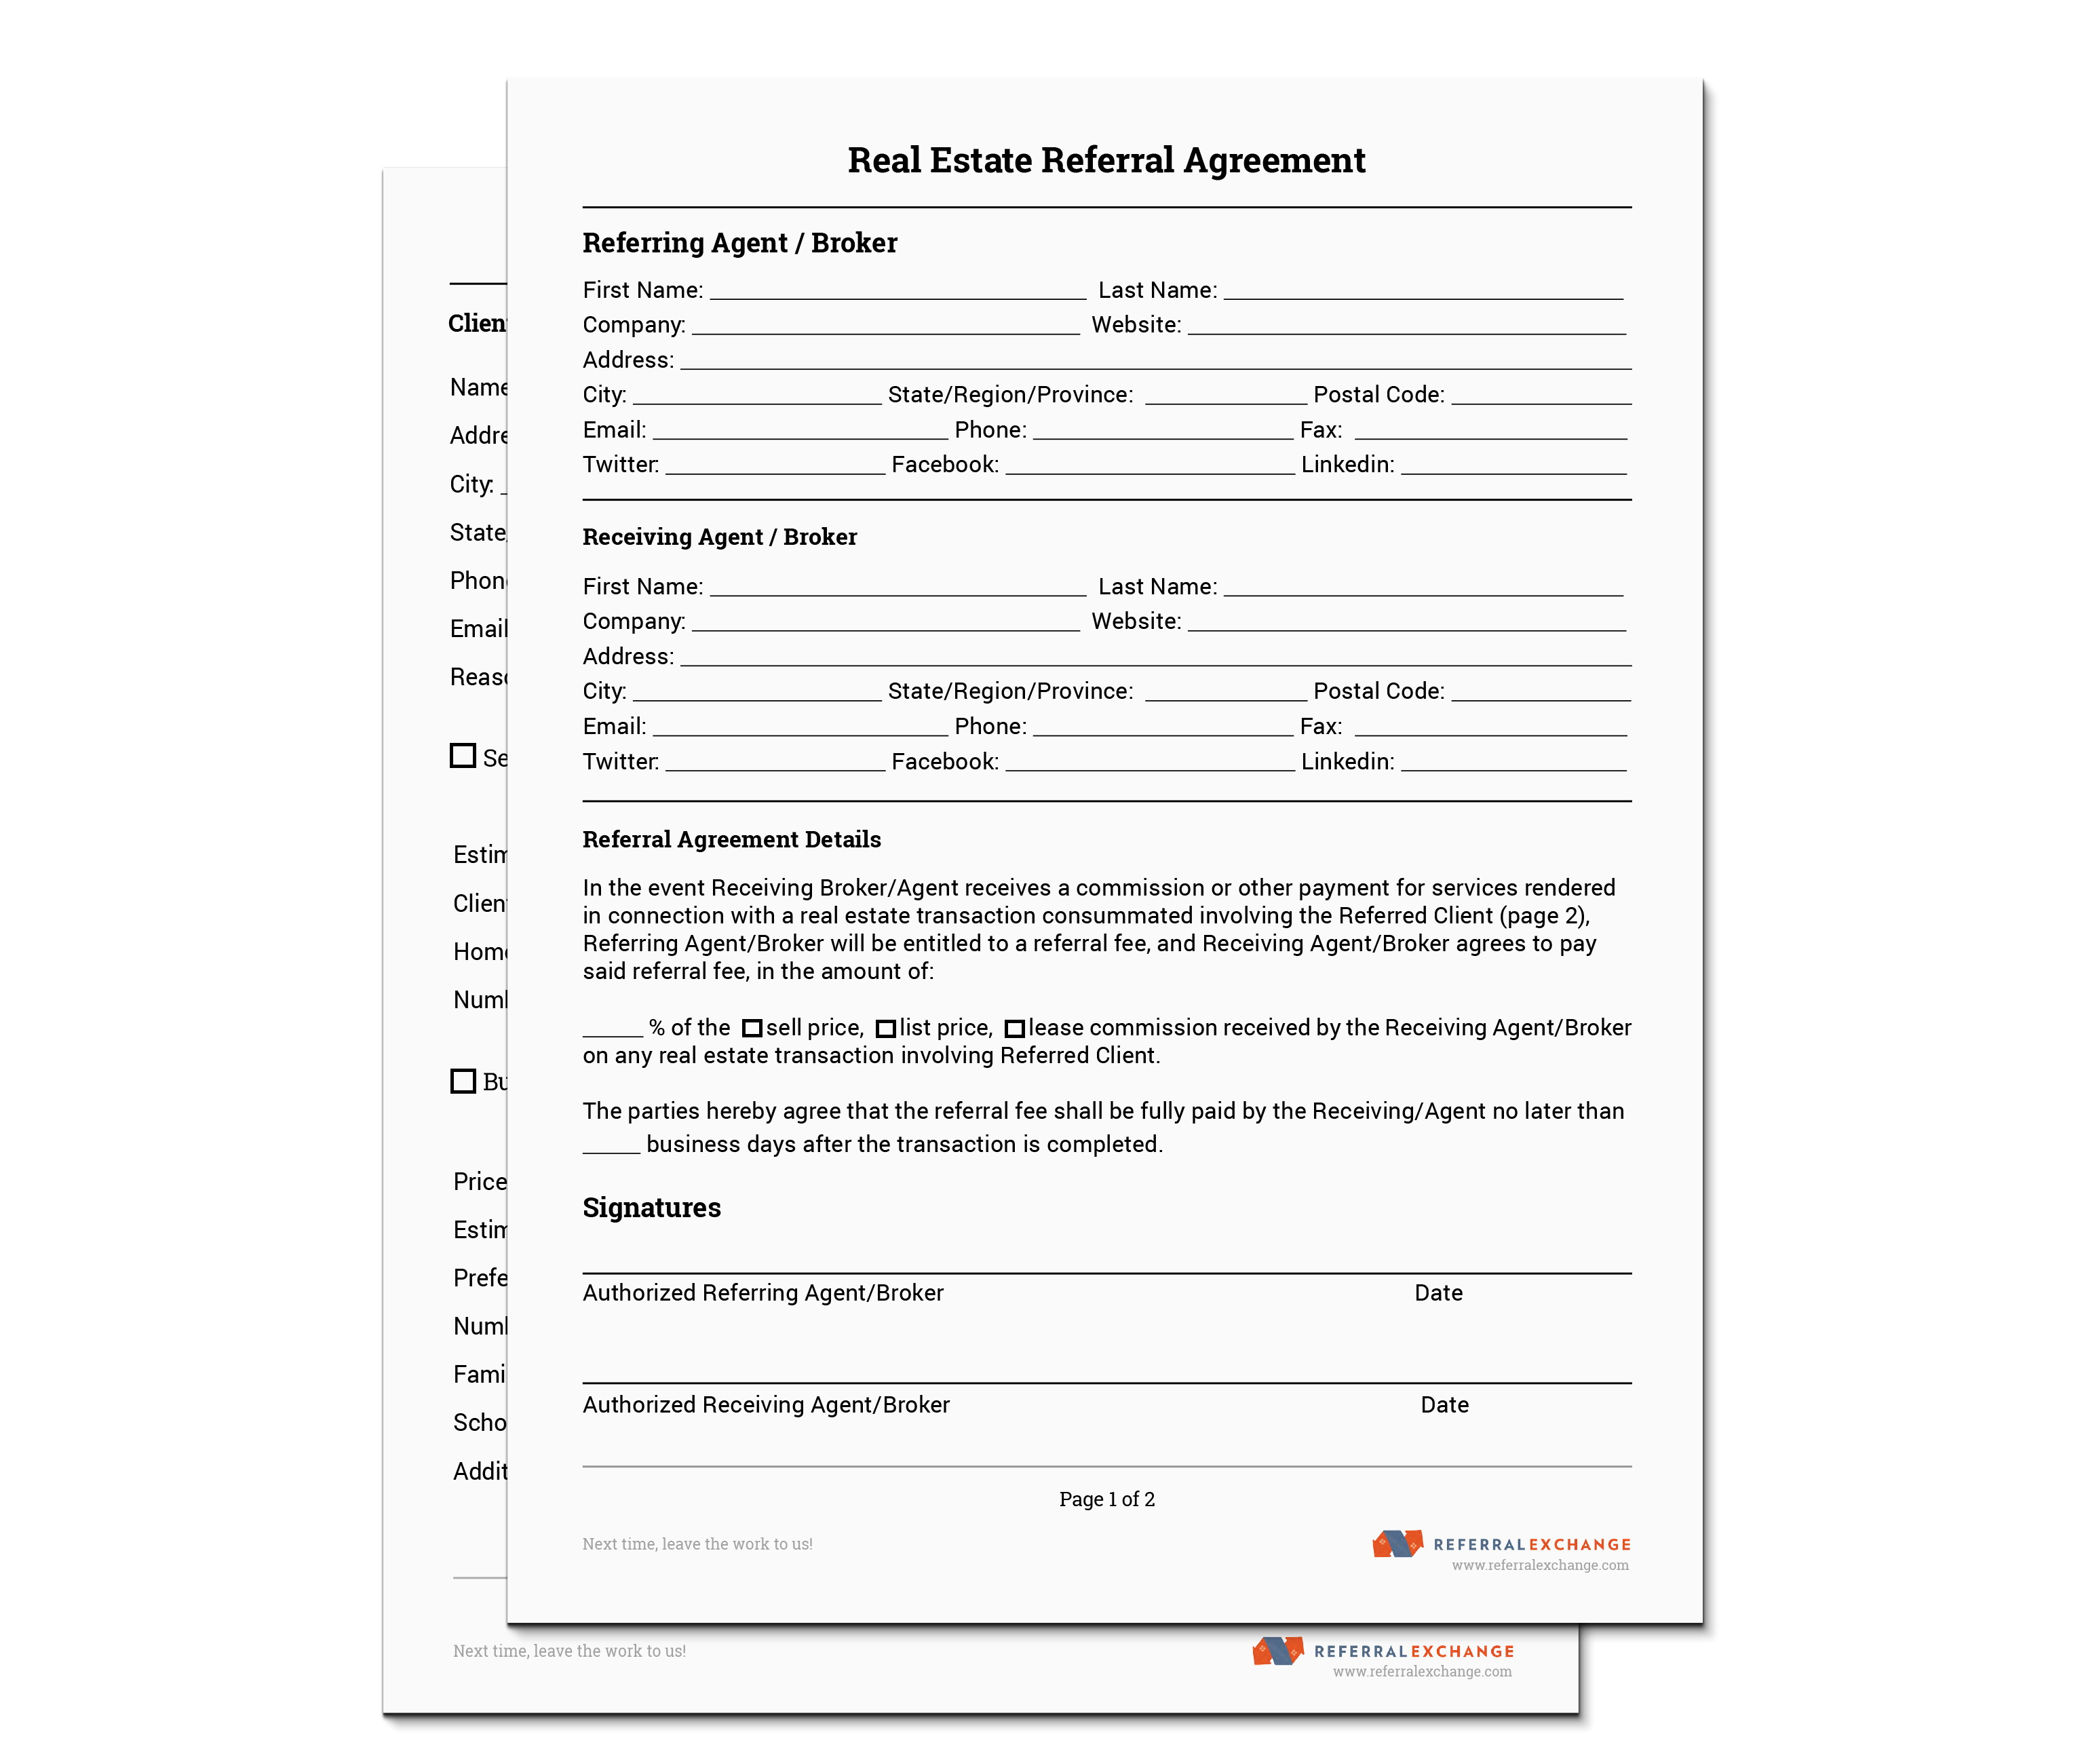 Referral Agreement Template Australia